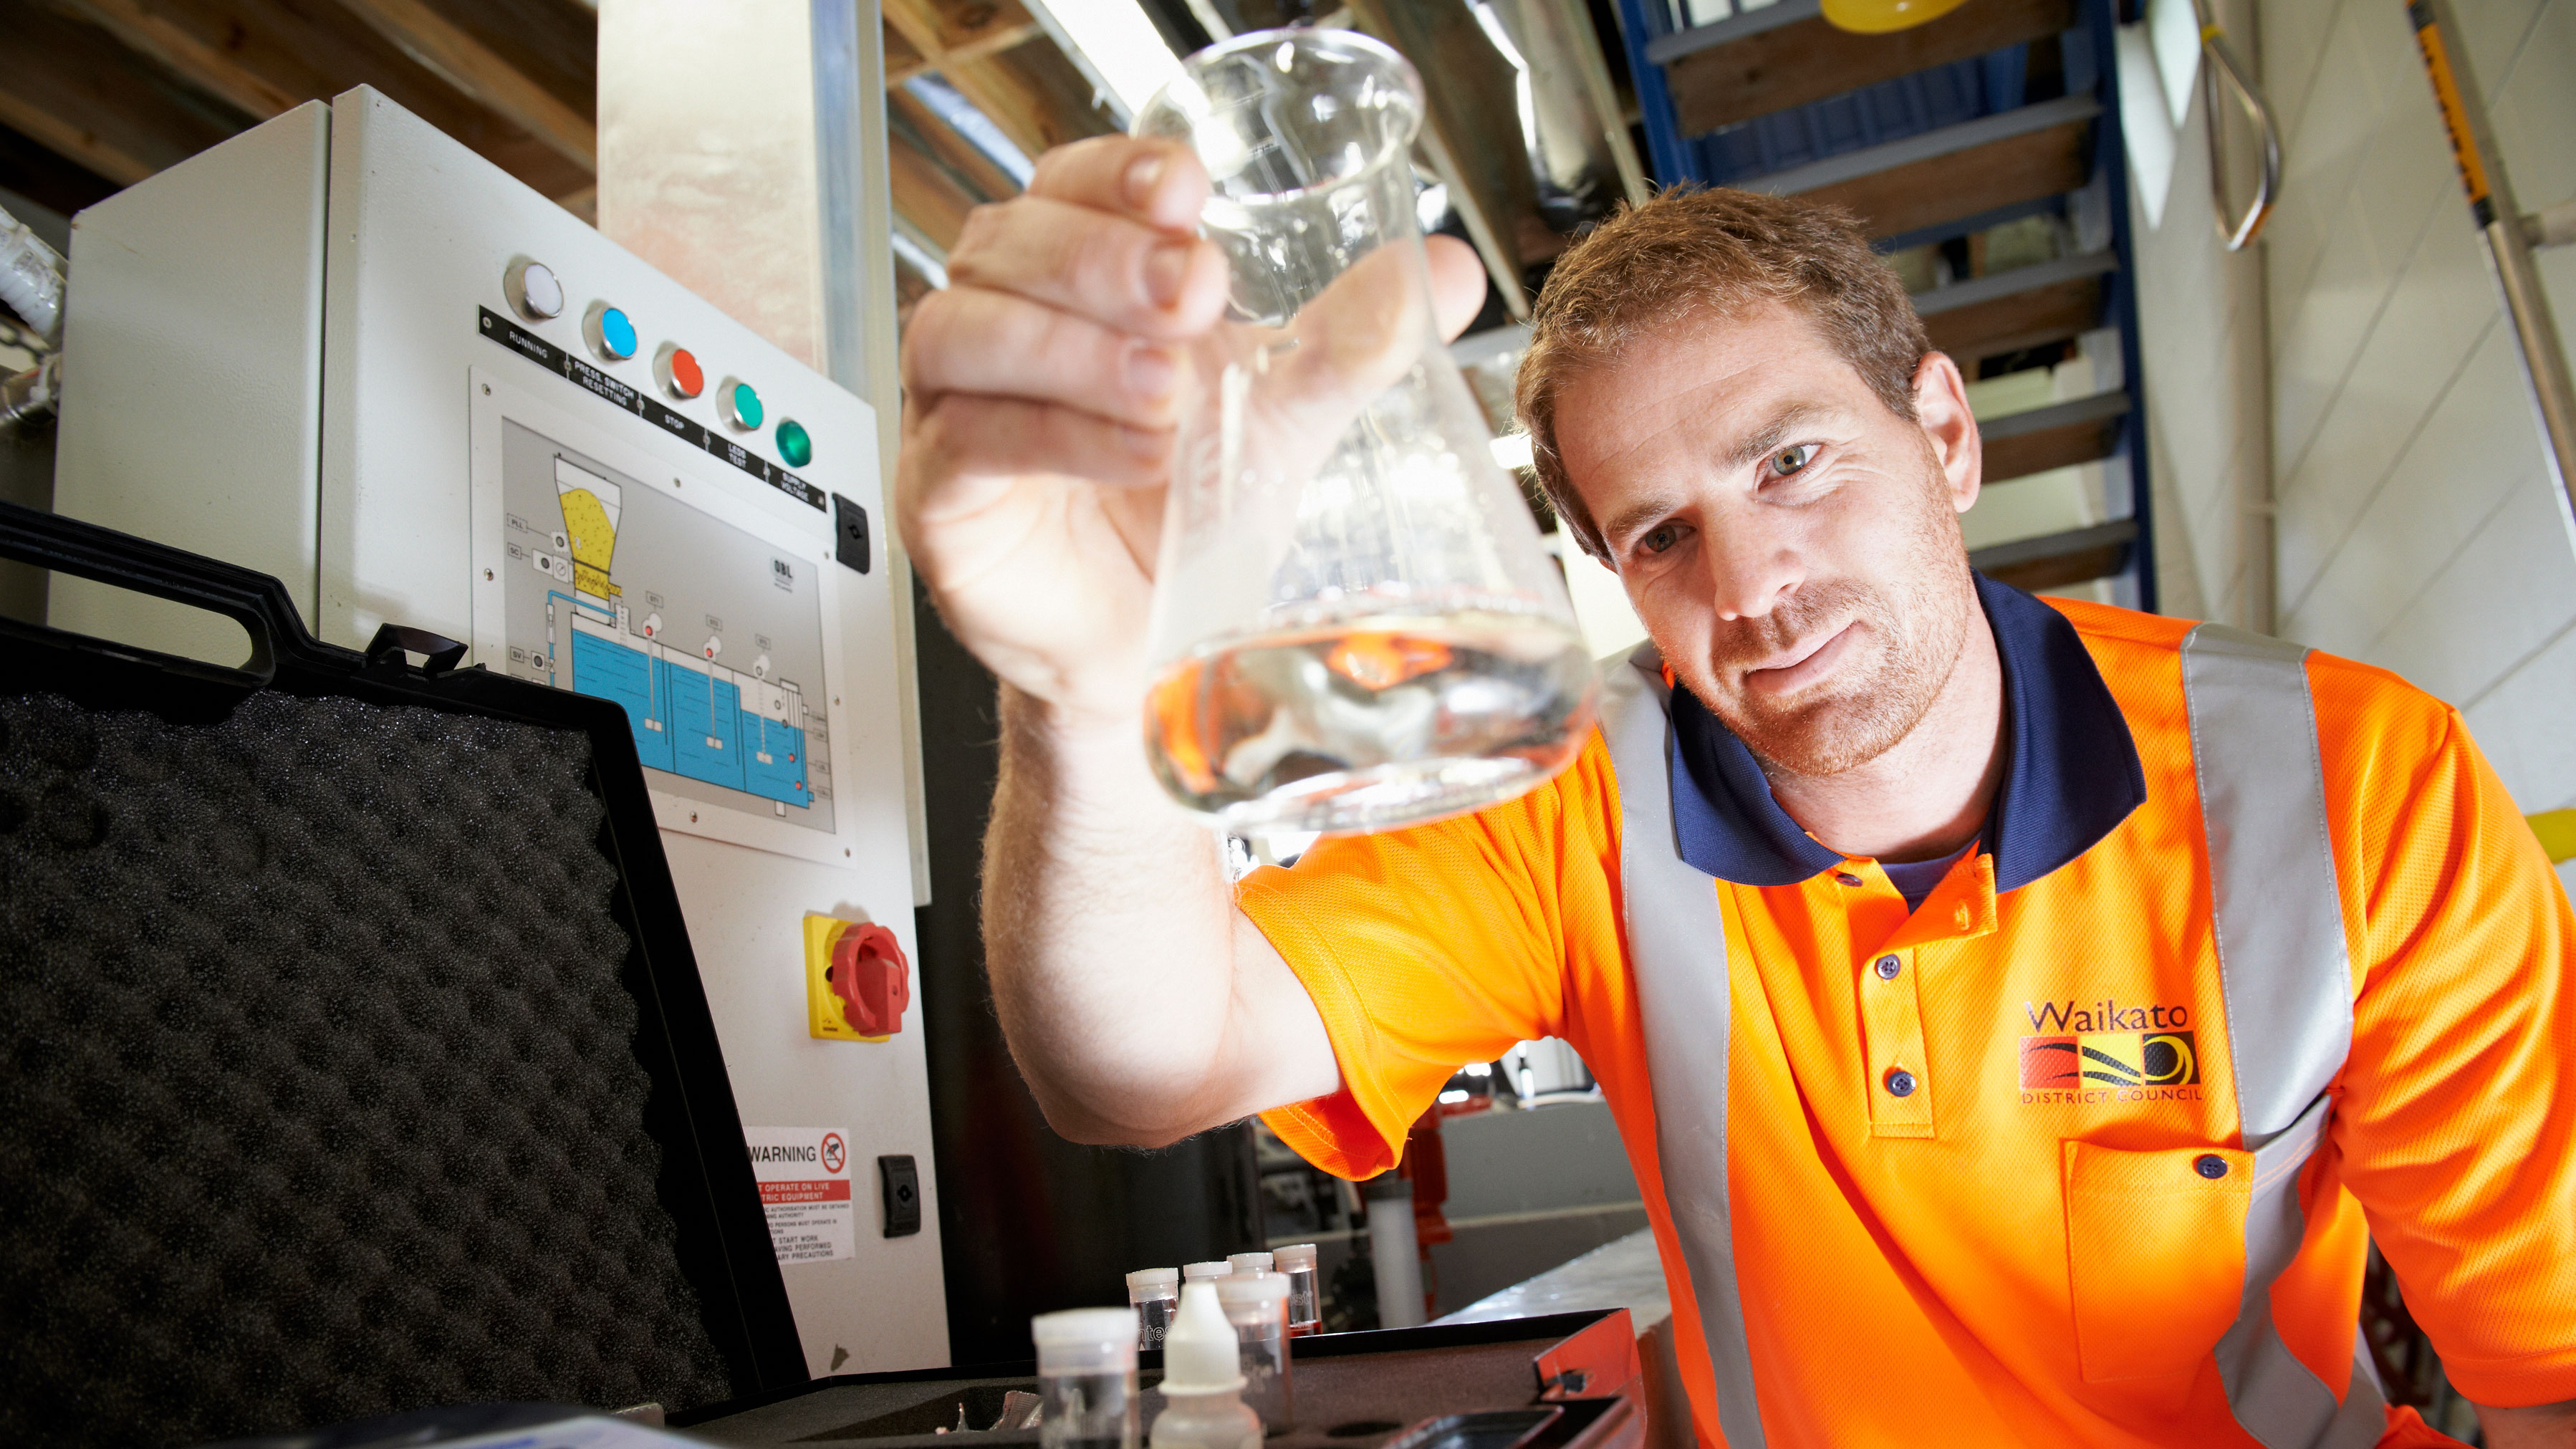 Another Waikato water option in wings